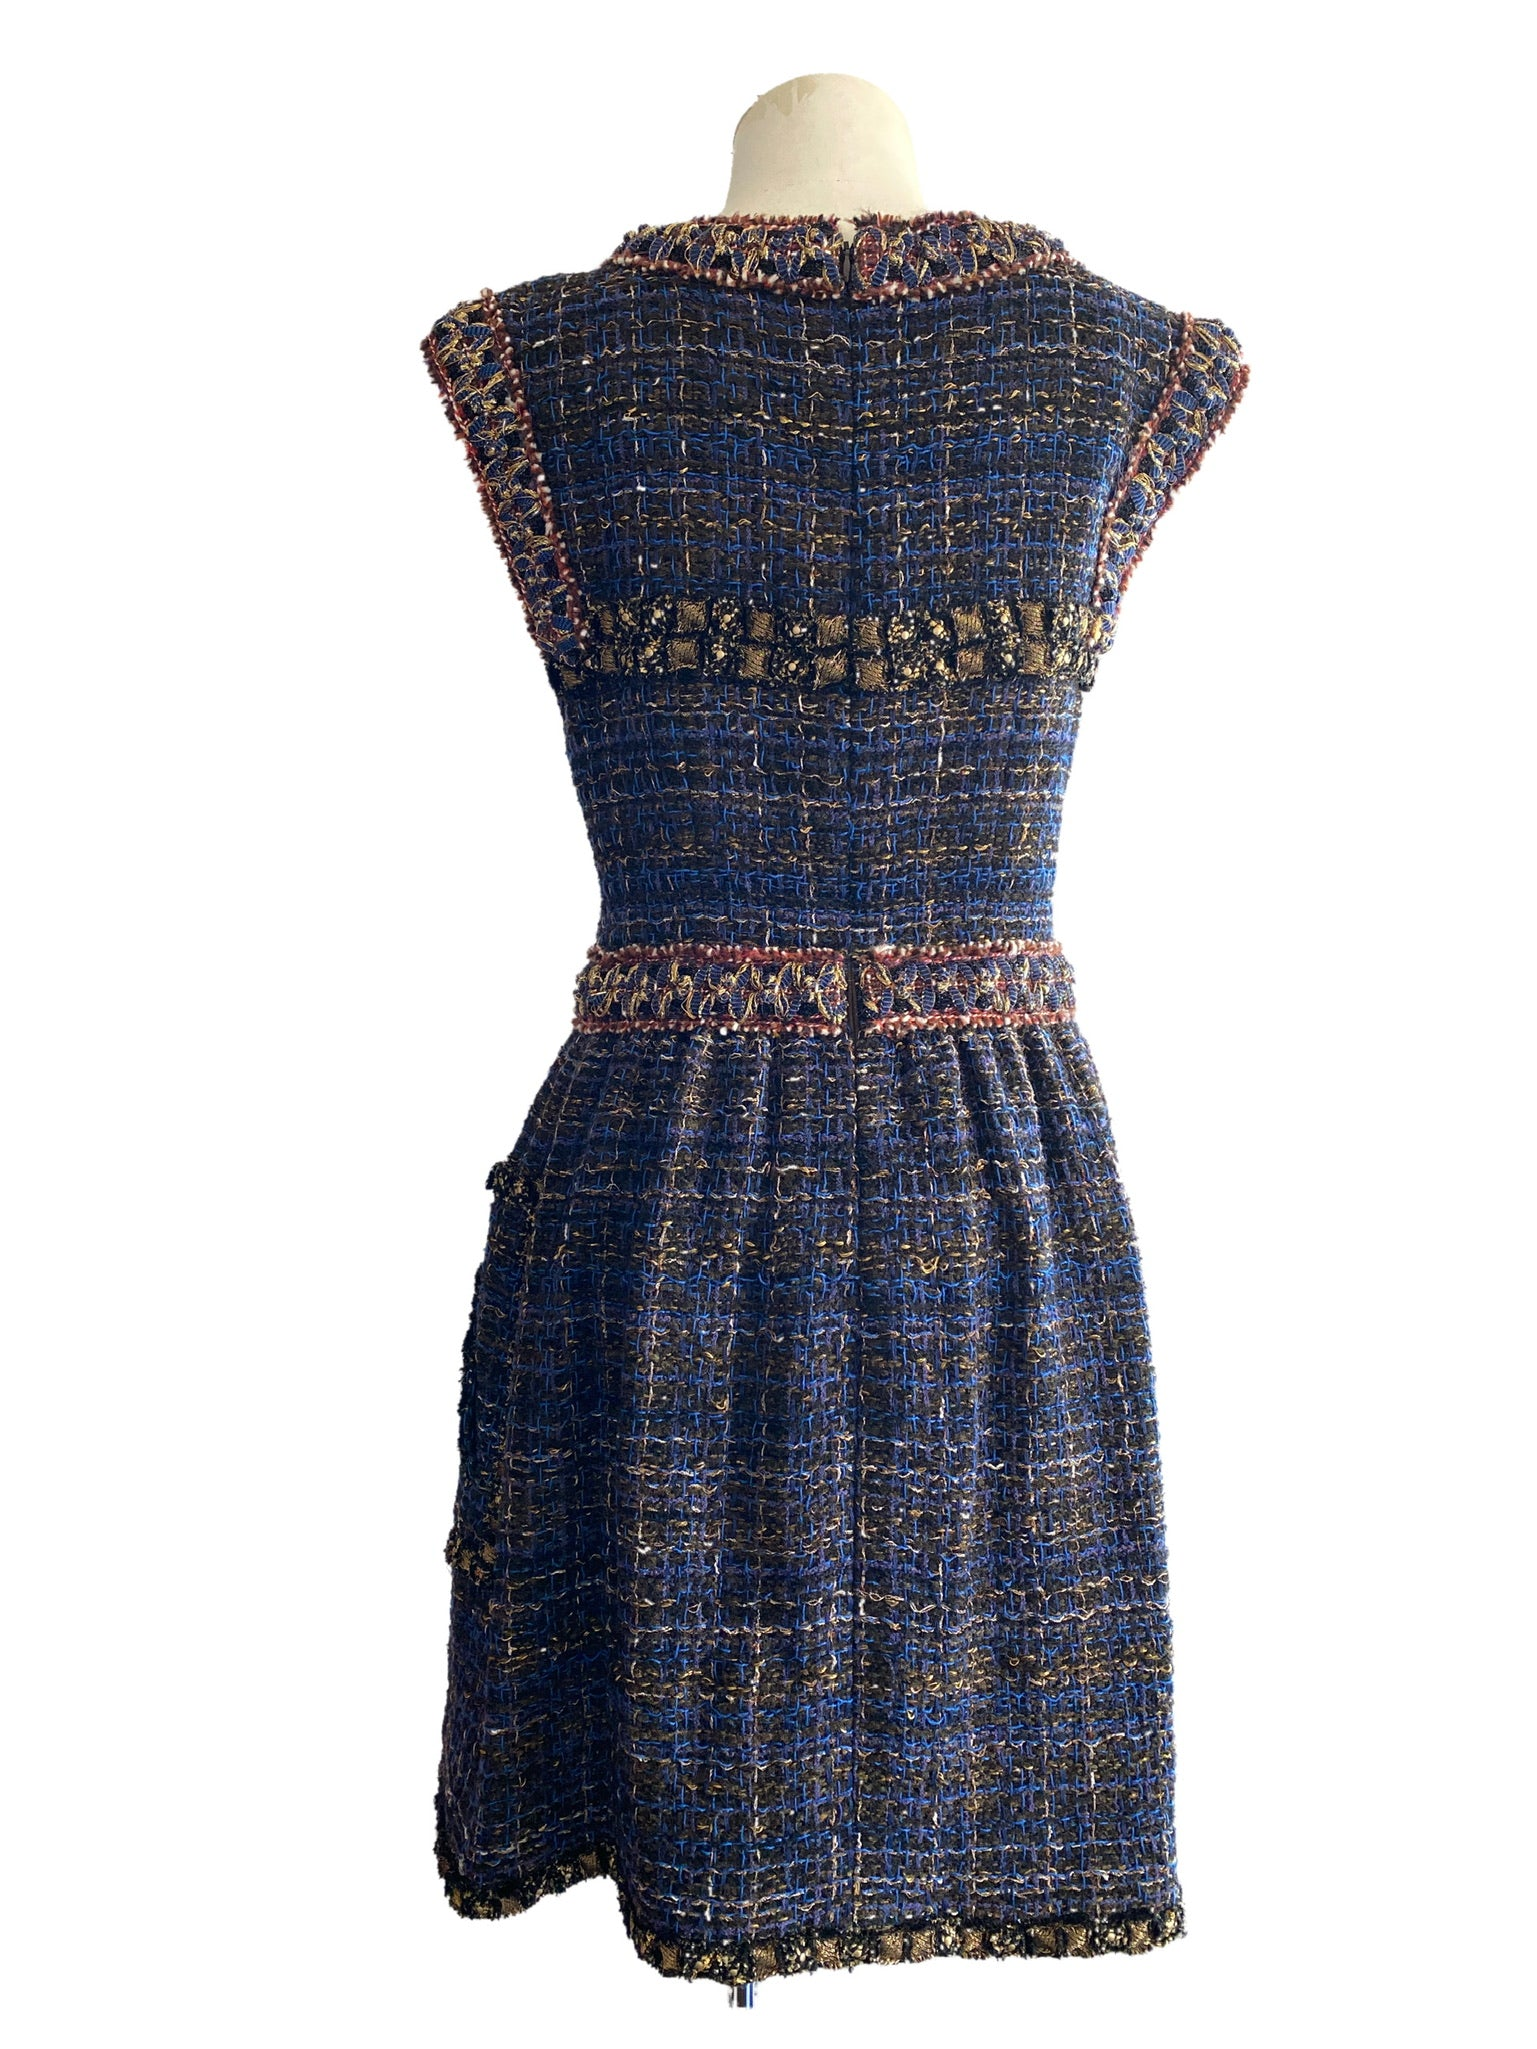 Chanel Vintage 2001 Byzantine Navy Boucle Dress size 40